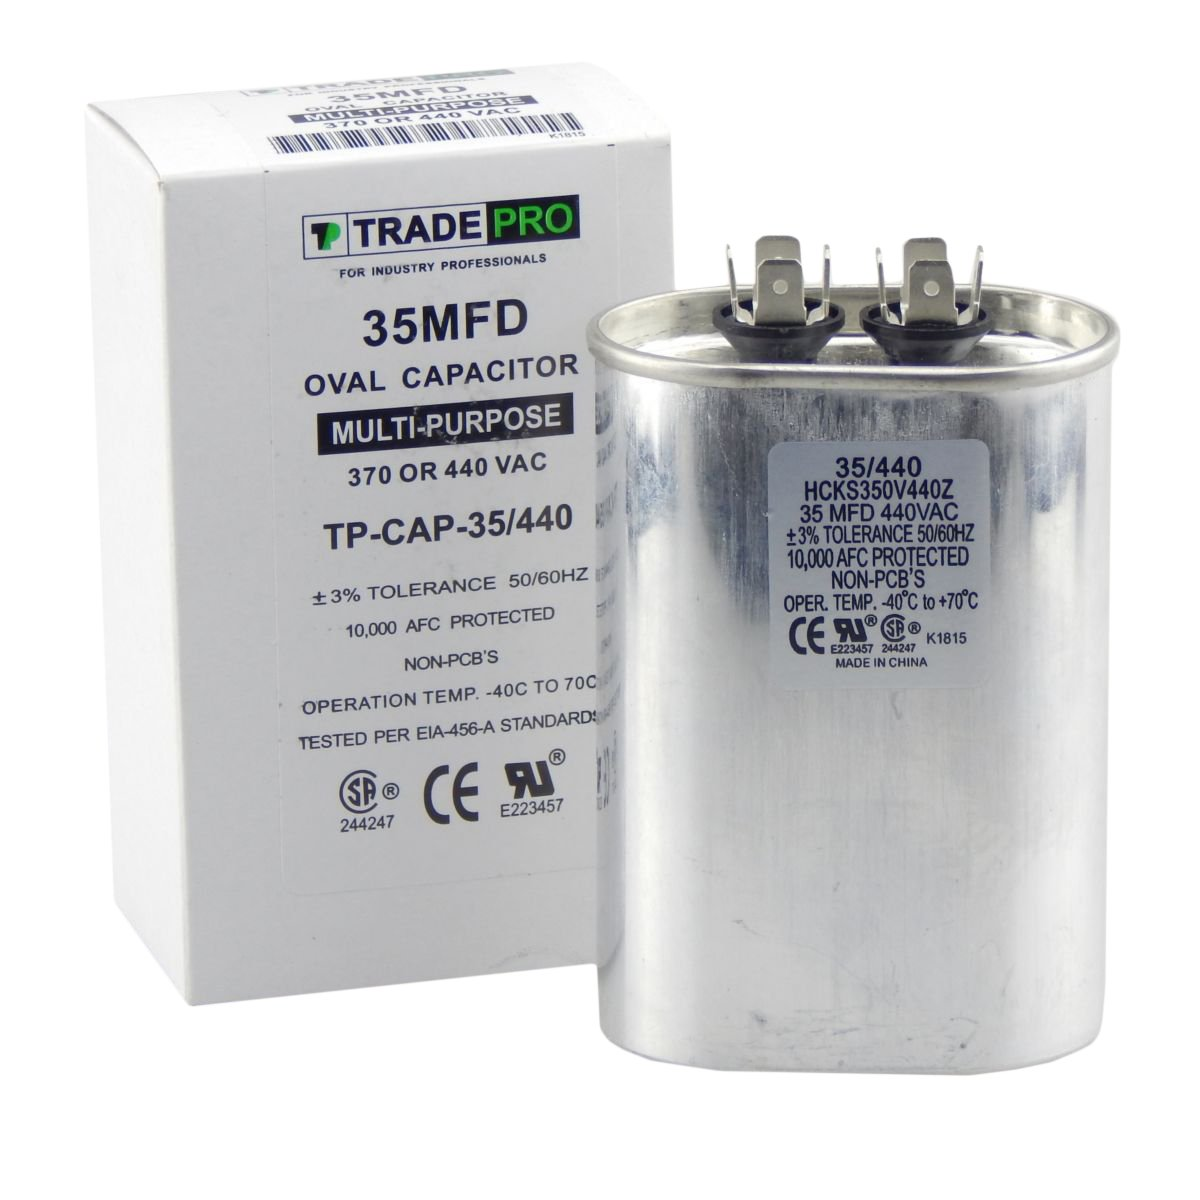 35 mfd Capacitor, Industrial Grade Replacement for Central Air-Conditioners, Heat Pumps, Condenser Fan Motors, and Compressors. Oval Multi-Purpose 370/440 Volt - by Trade Pro by TradePro